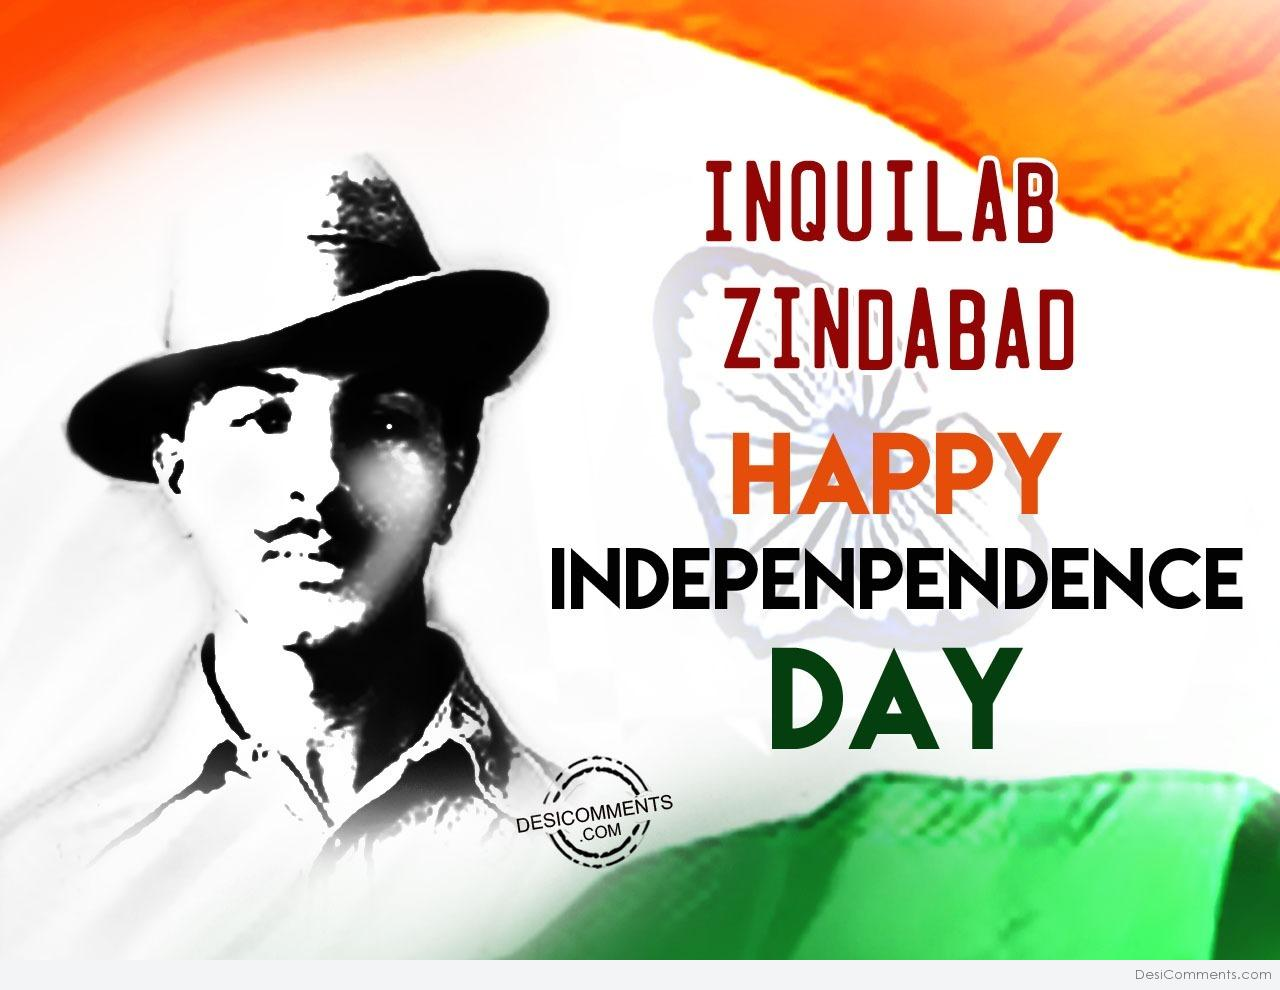 Good Love Quotes Wallpapers Inquilab Zindabad Happy Independence Day Desicomments Com